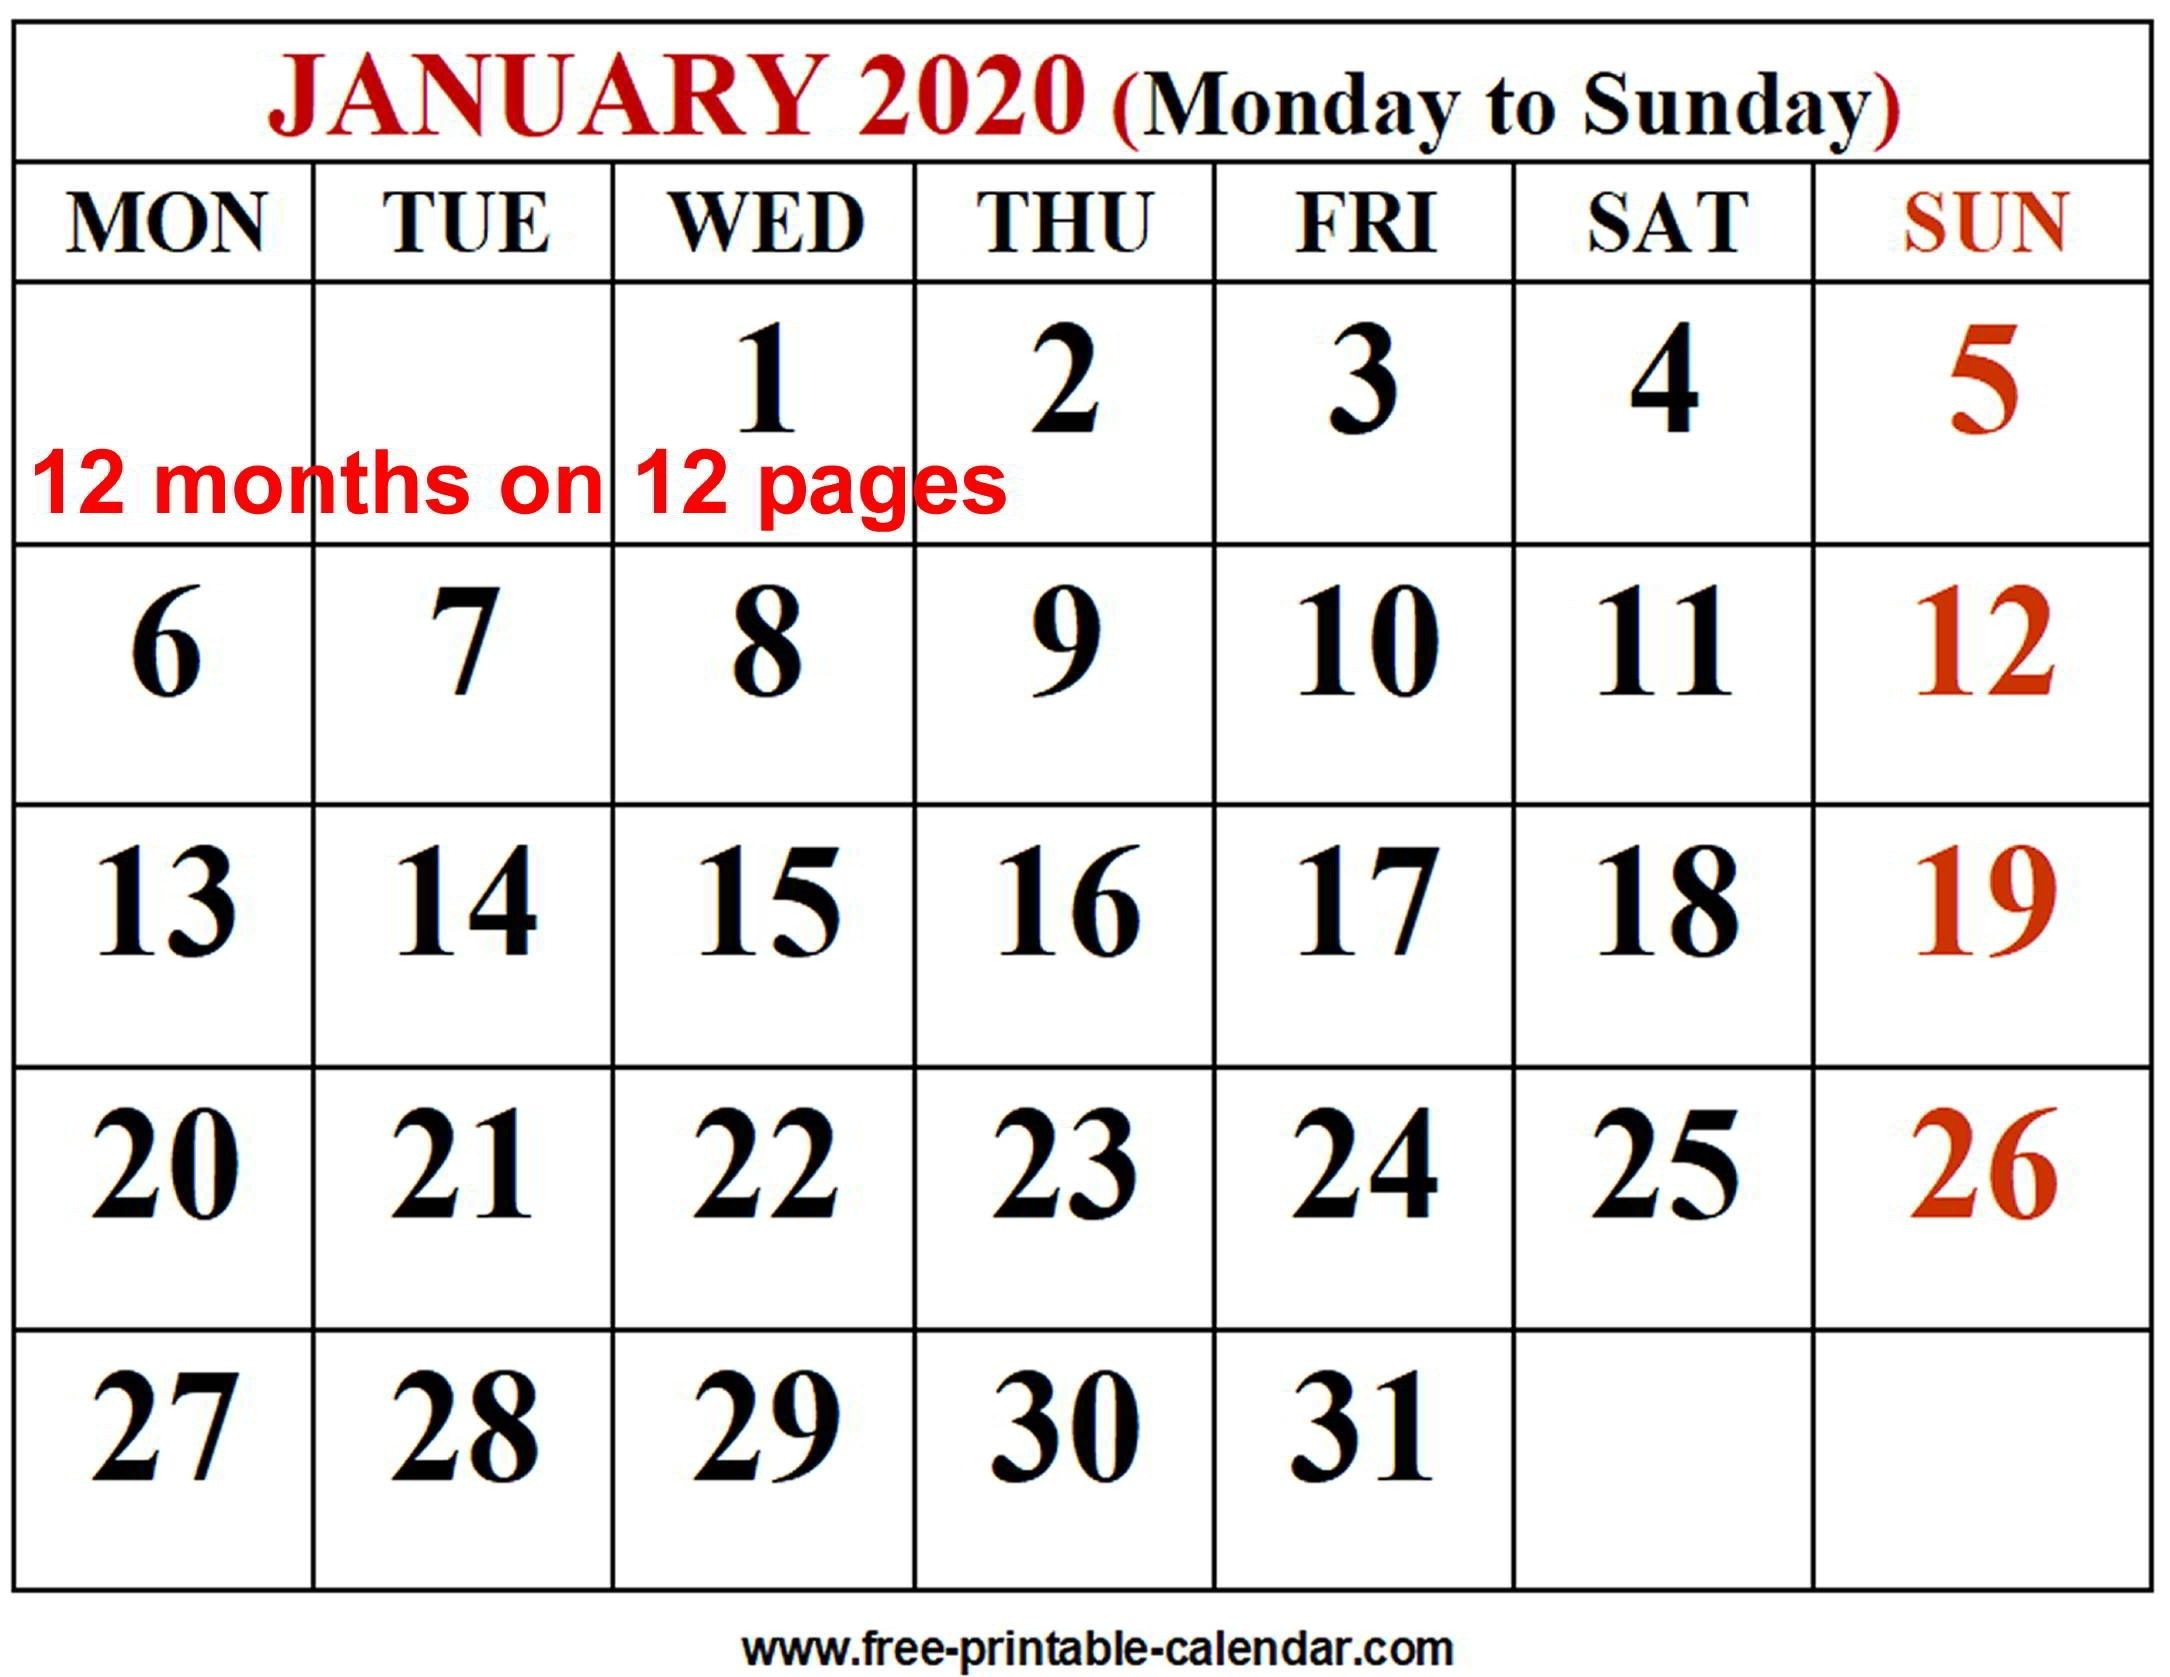 2020 Calendar Template - Free-Printable-Calendar  Calender With Scriptures Template